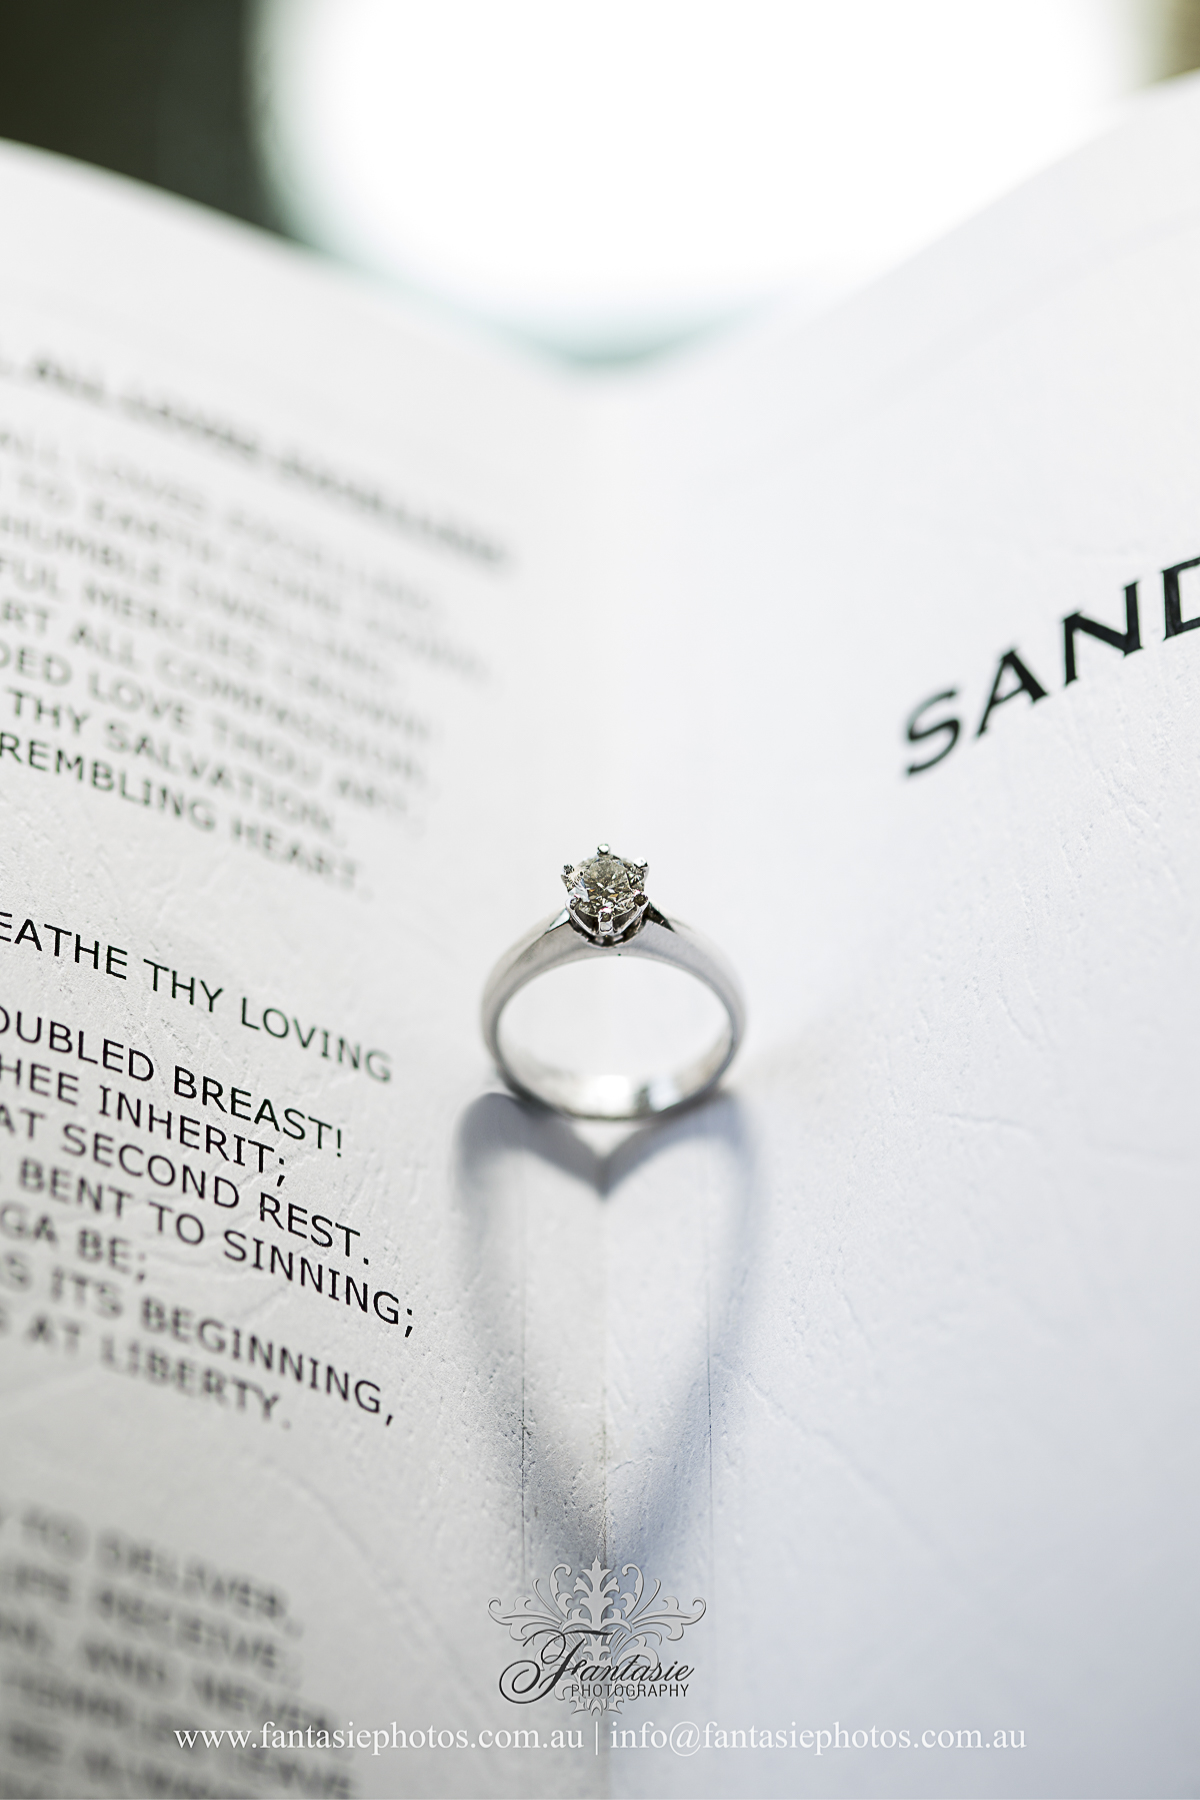 Love heart wedding engagement diamond ring in the book photo | Fantasie Photography